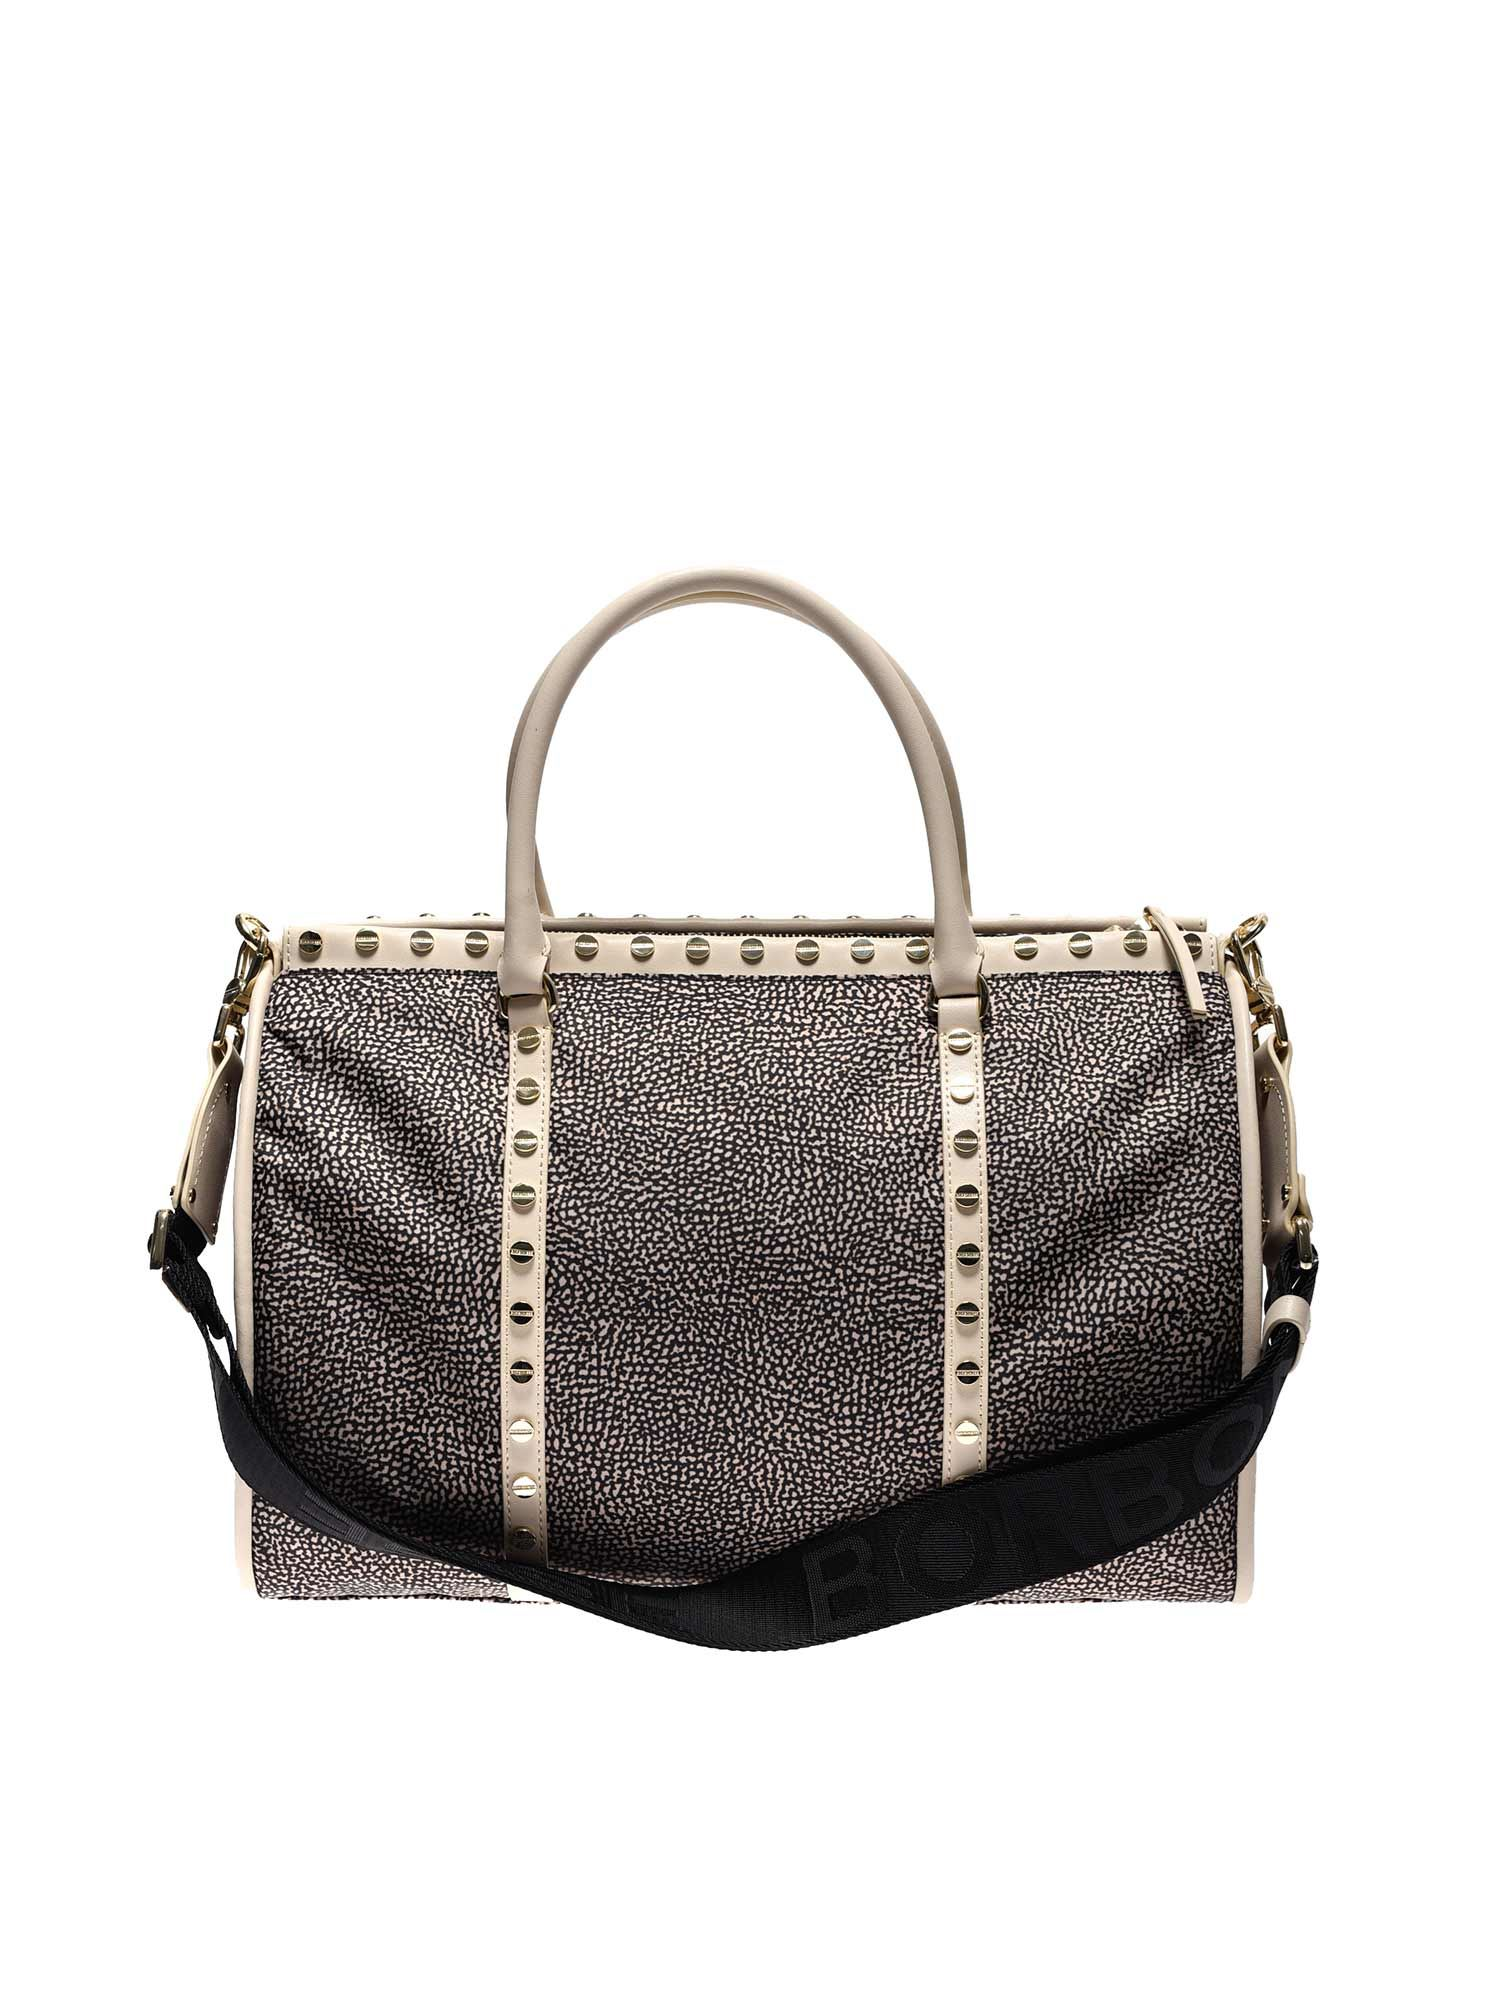 Borbonese MEDIUM METRO SATCHEL BAG IN BEIGE